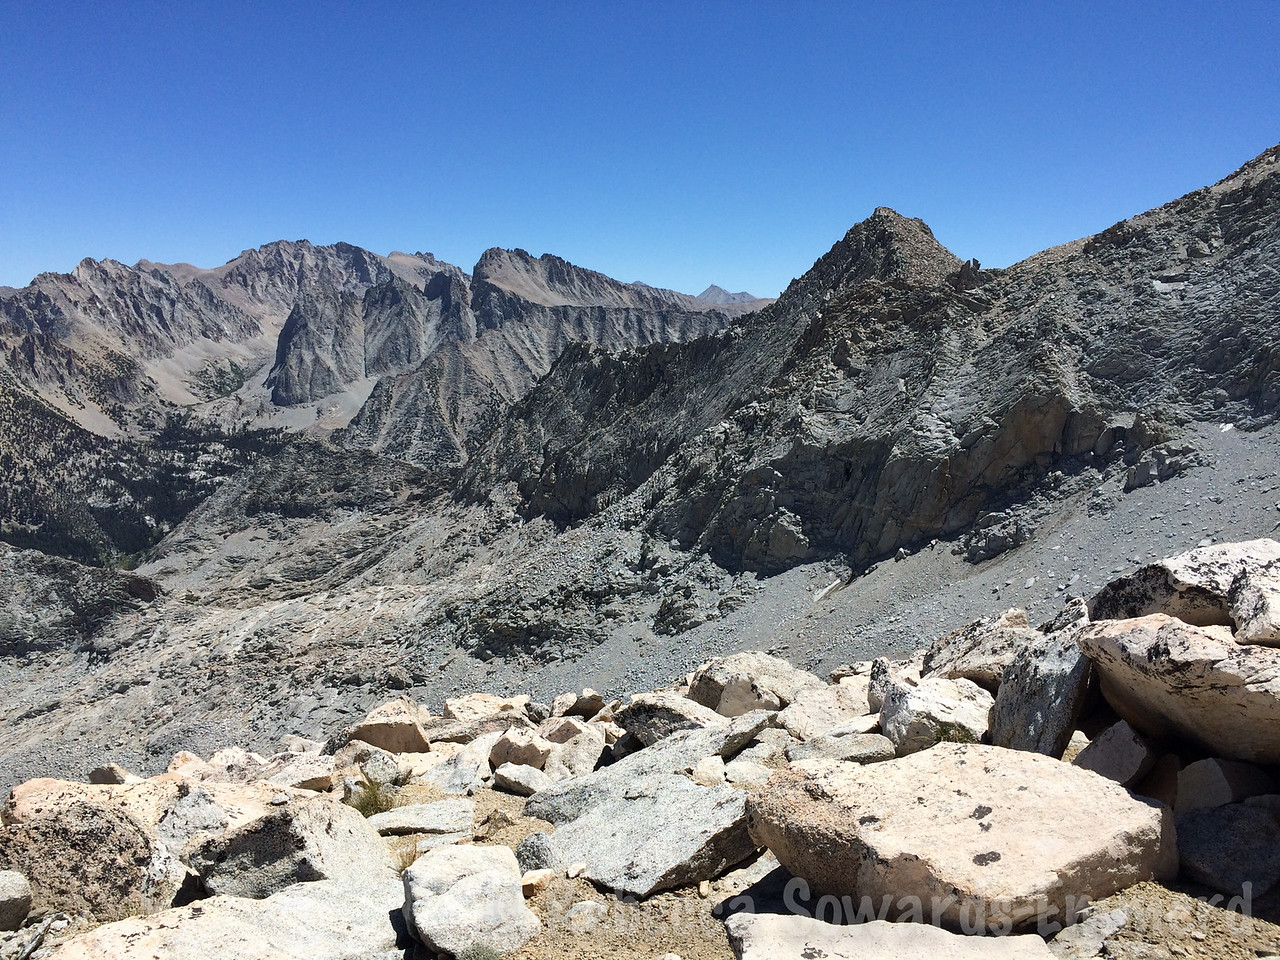 Looking towards the Kings-Kern divide